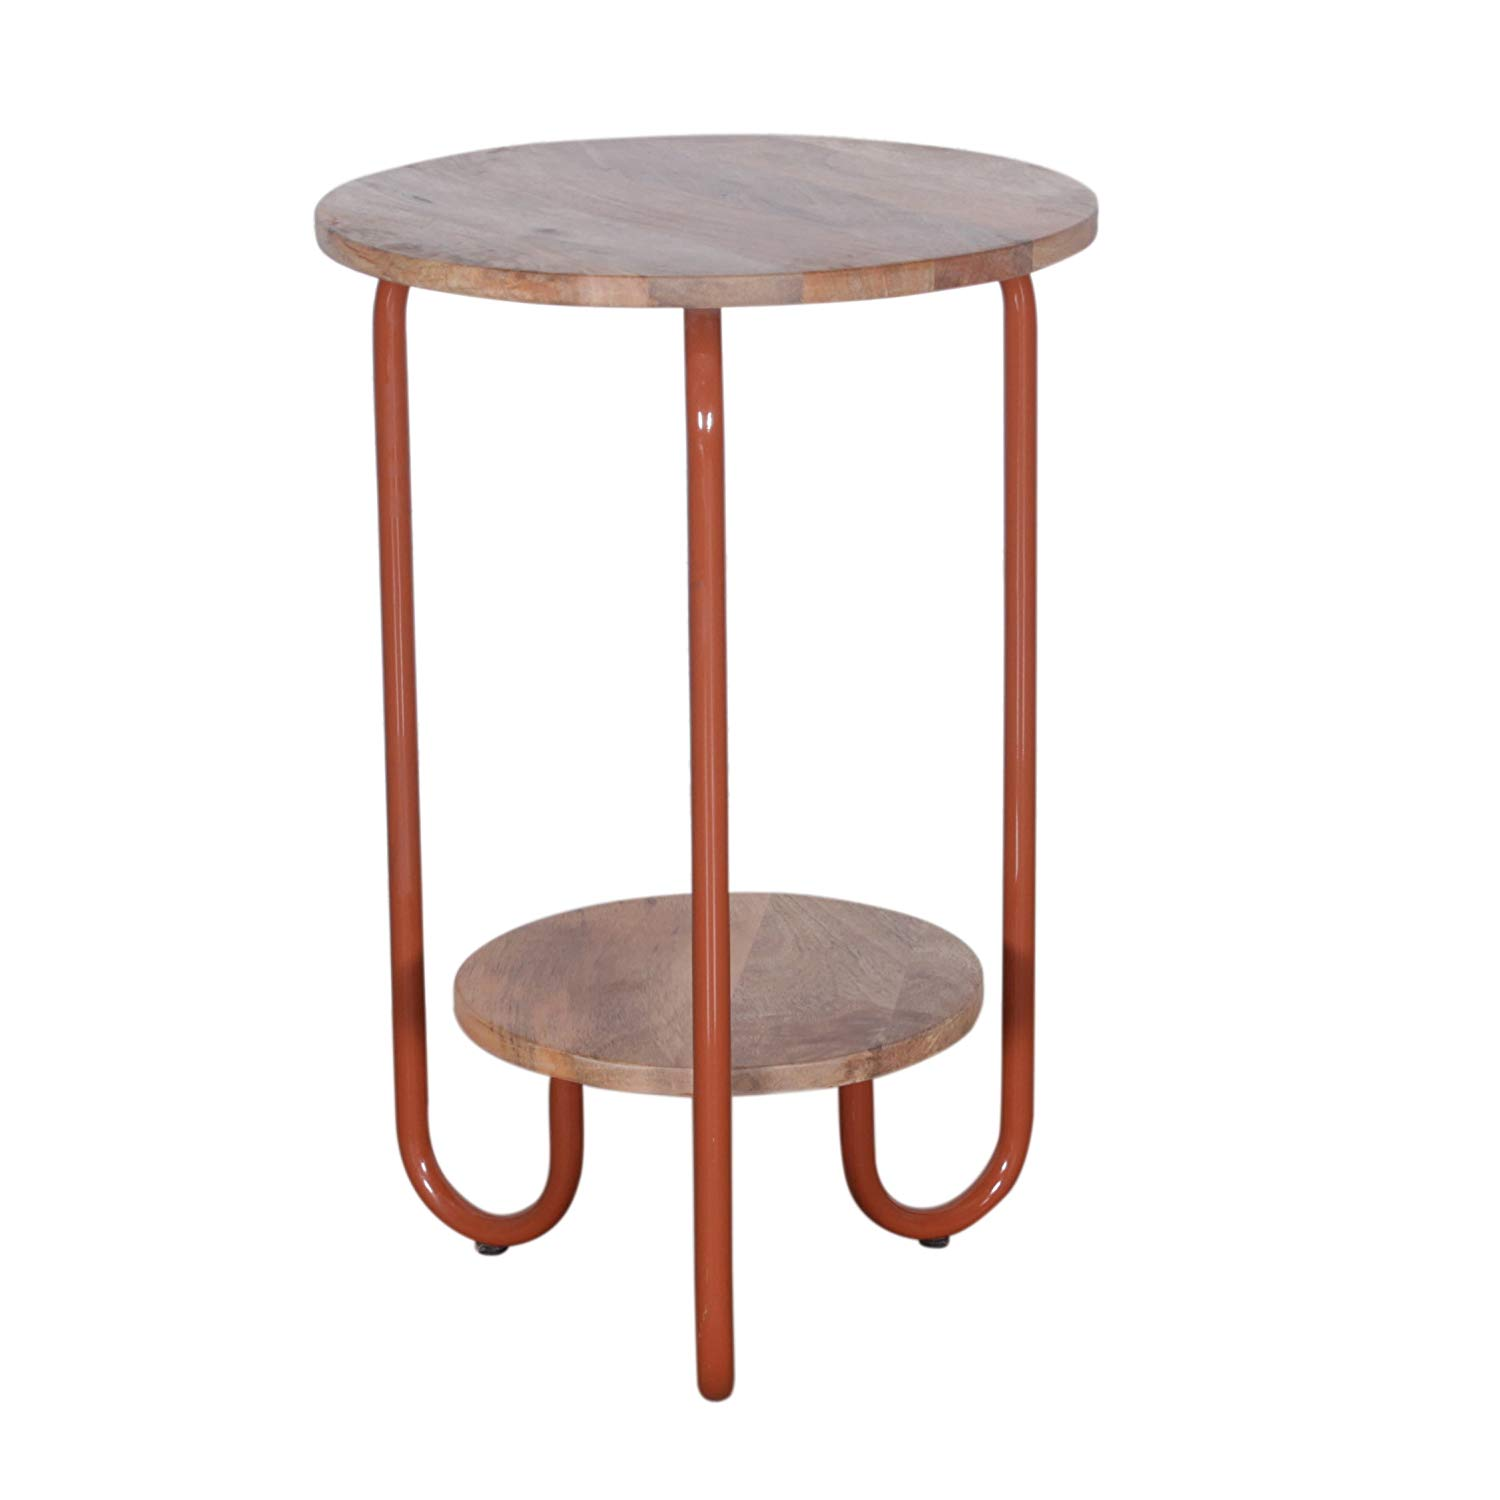 four legs multipurpose wooden metal brown round end twisted mango wood accent table side coffee for living room dining outdoor indoor kitchen chairs white cloth swivel ikea